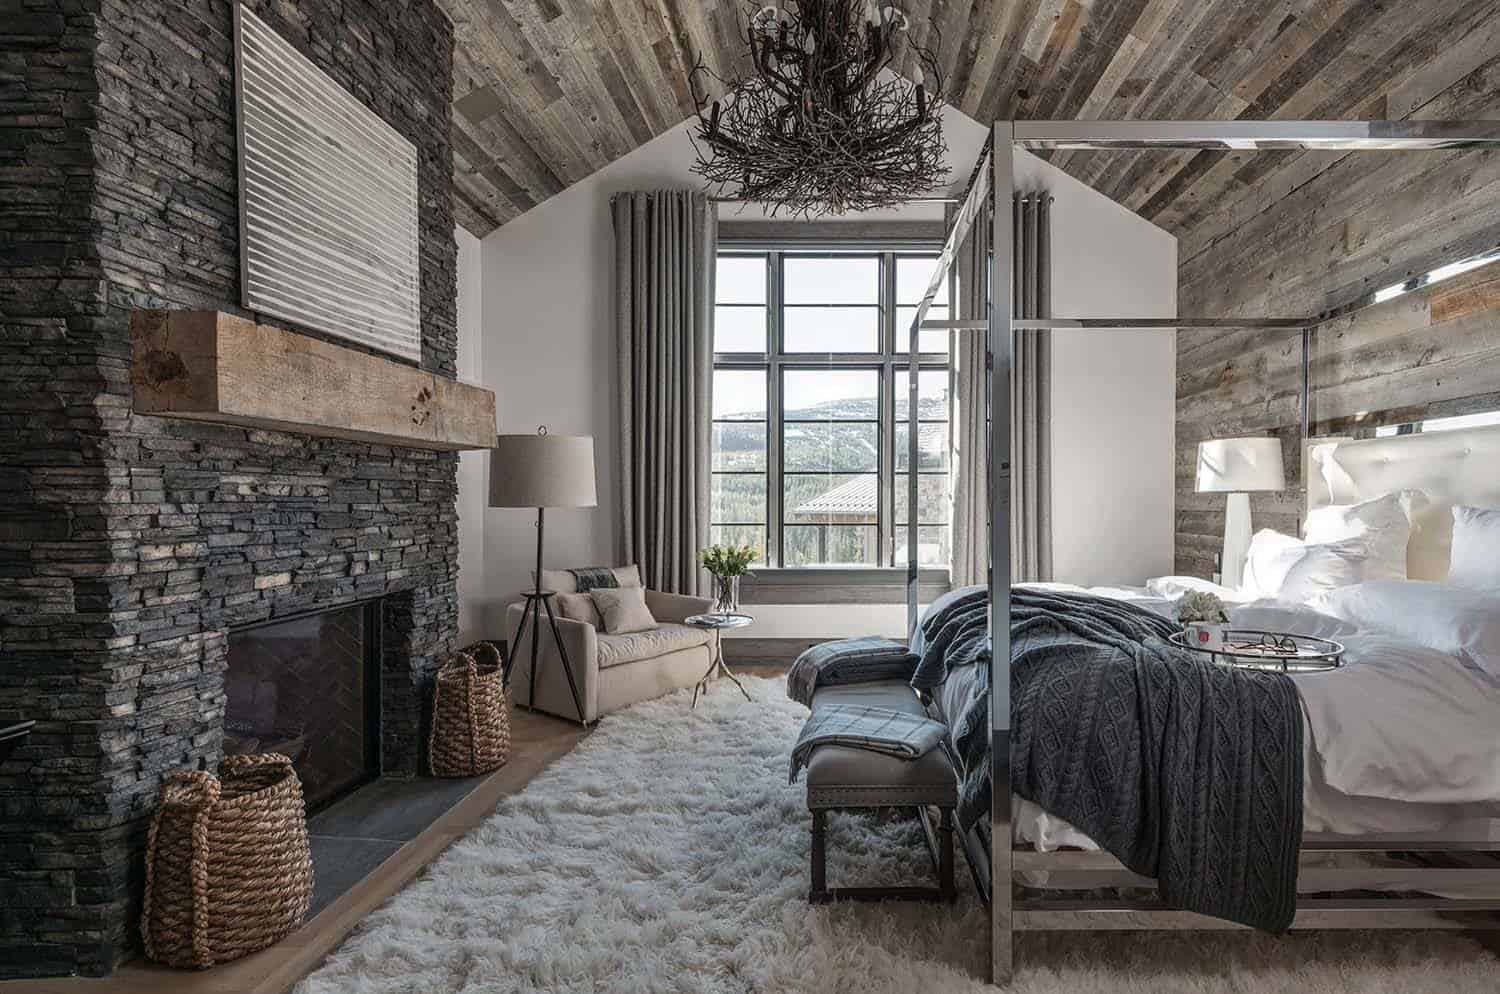 Ski in ski out chalet in montana with rustic modern styling for Architectural designs for chalets